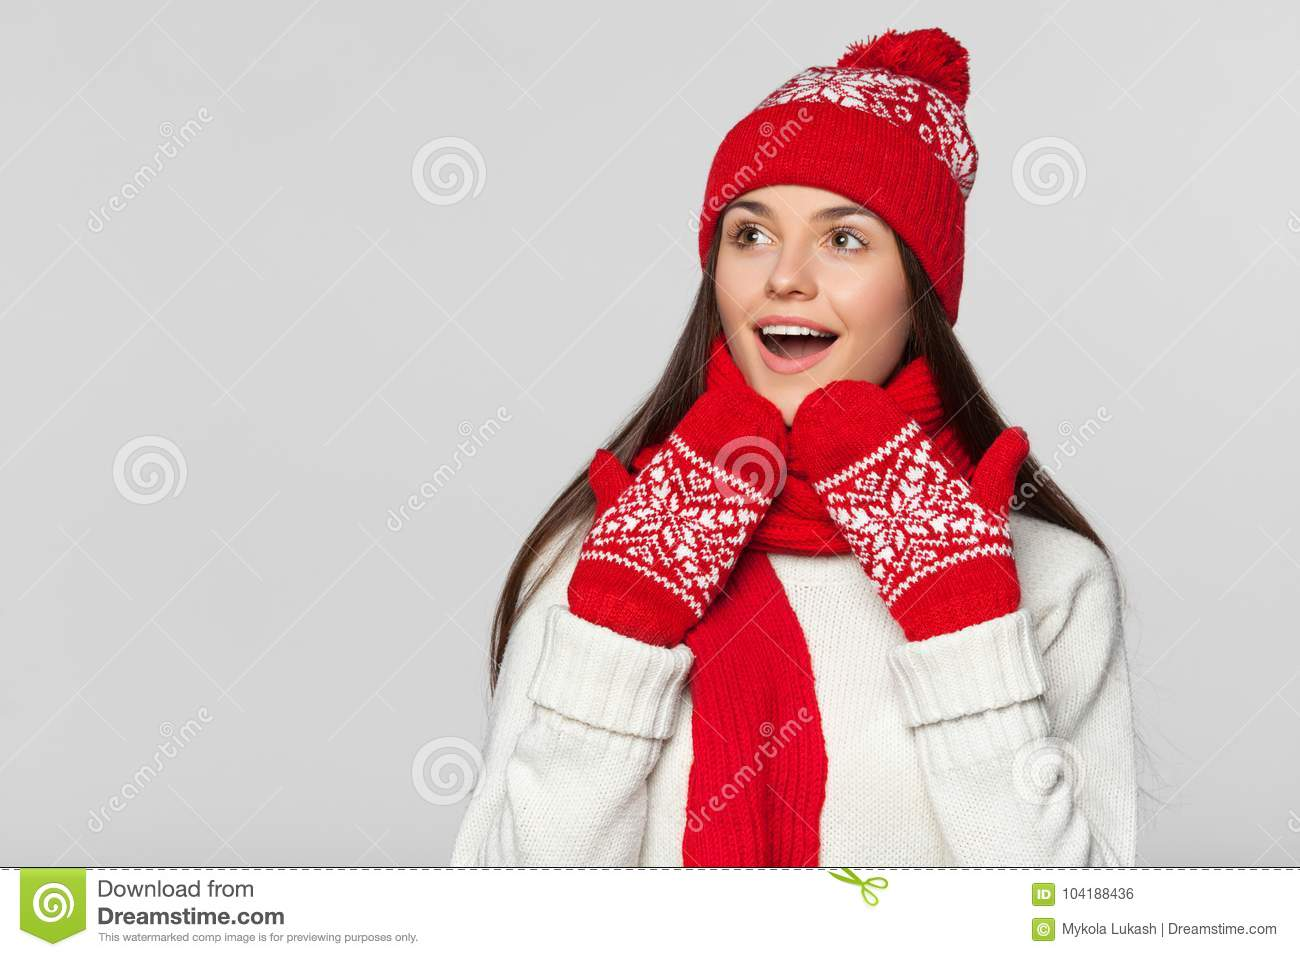 dfff5dd1a8575 Happy surprised woman looking sideways in excitement. Excited christmas girl  wearing knitted warm hat and scarf